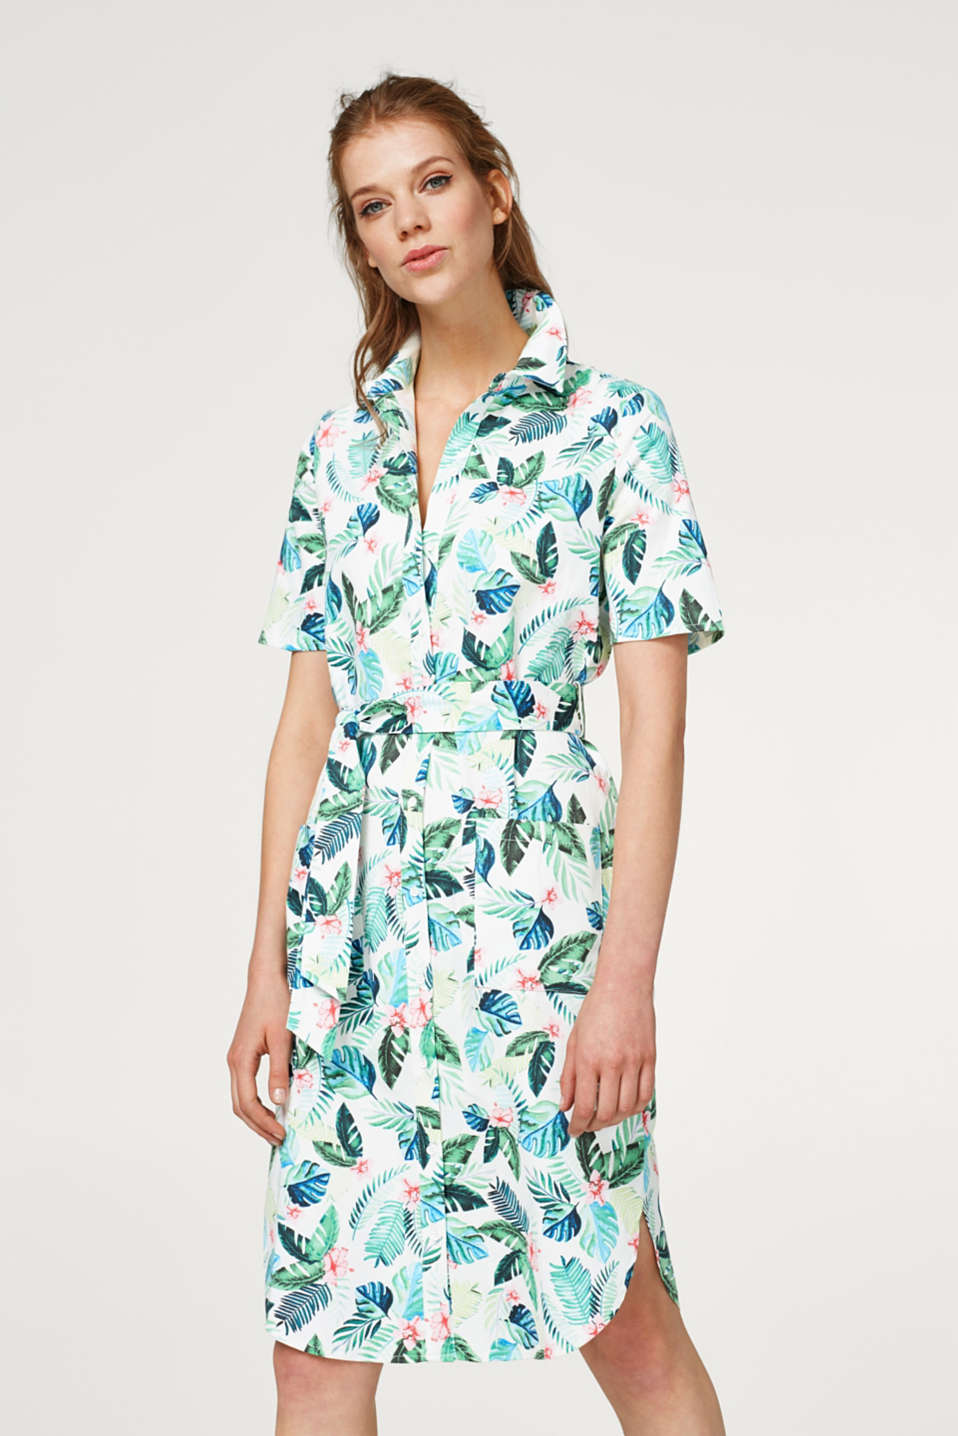 Esprit - Print dress made of stretch cotton with a tie belt